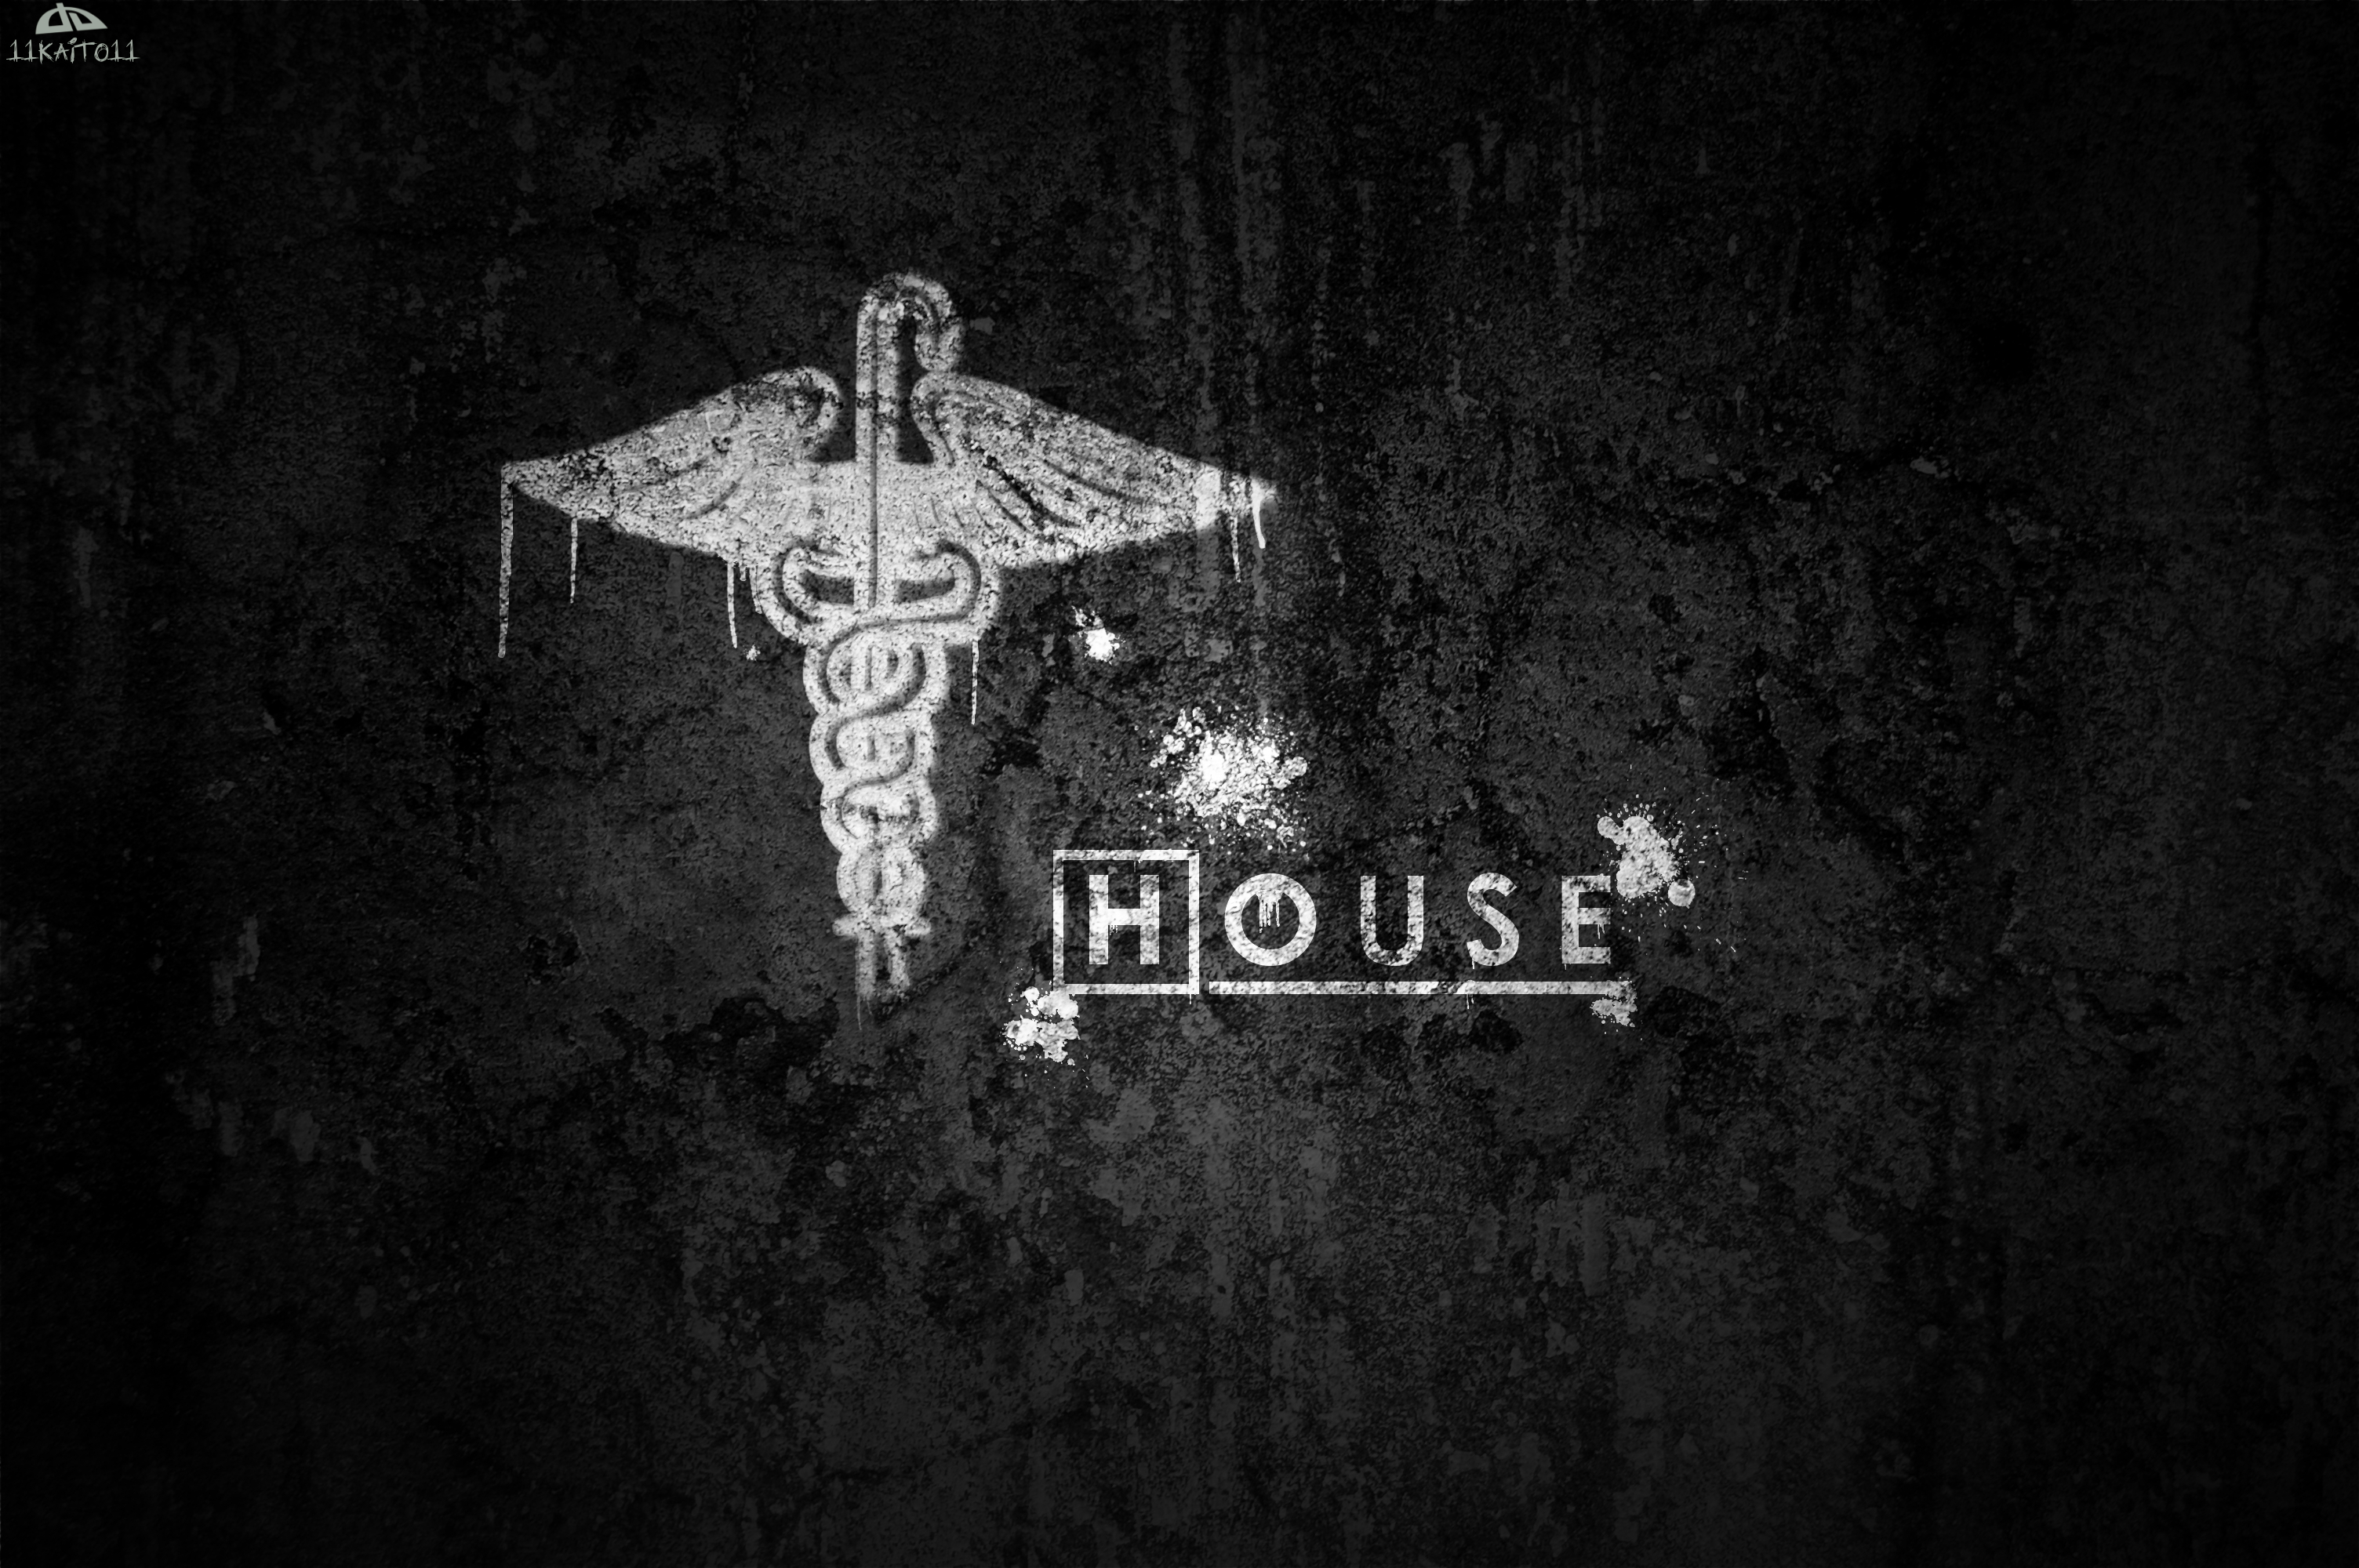 ... Dr. House (Wallpaper 31) by 11kaito11